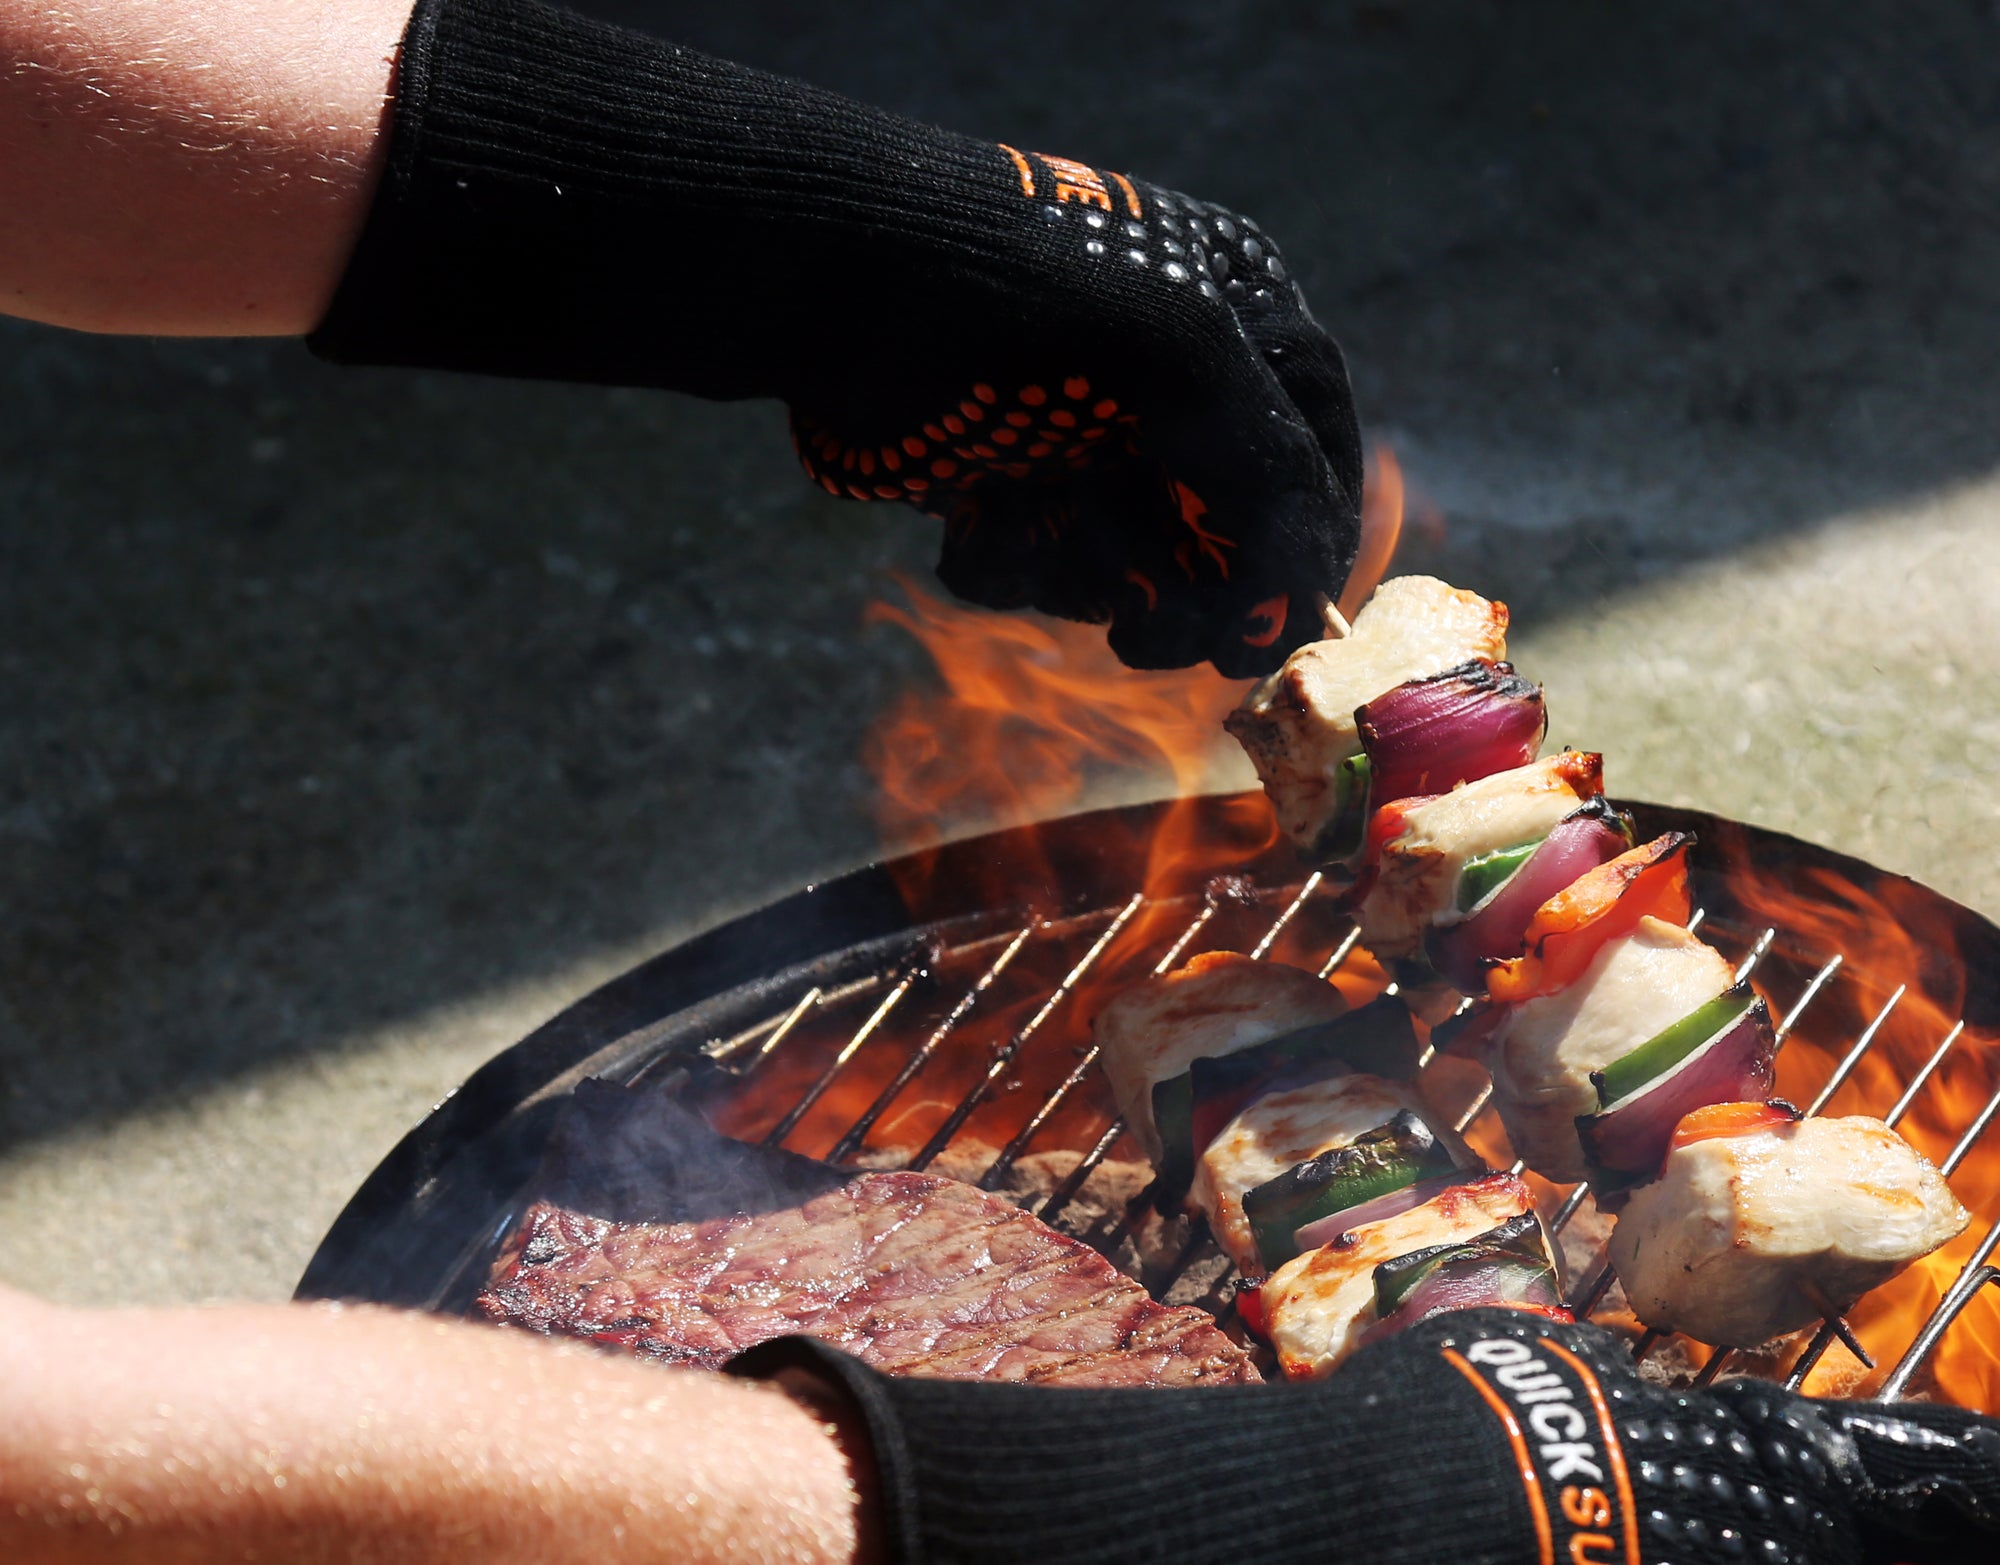 QuickSurvive Heat Resistant Fire Safety Glove picking up burning skewers on the grill - Best gloves for BBQ, Smoking and Grilling. Stop Burning your hands while grilling.